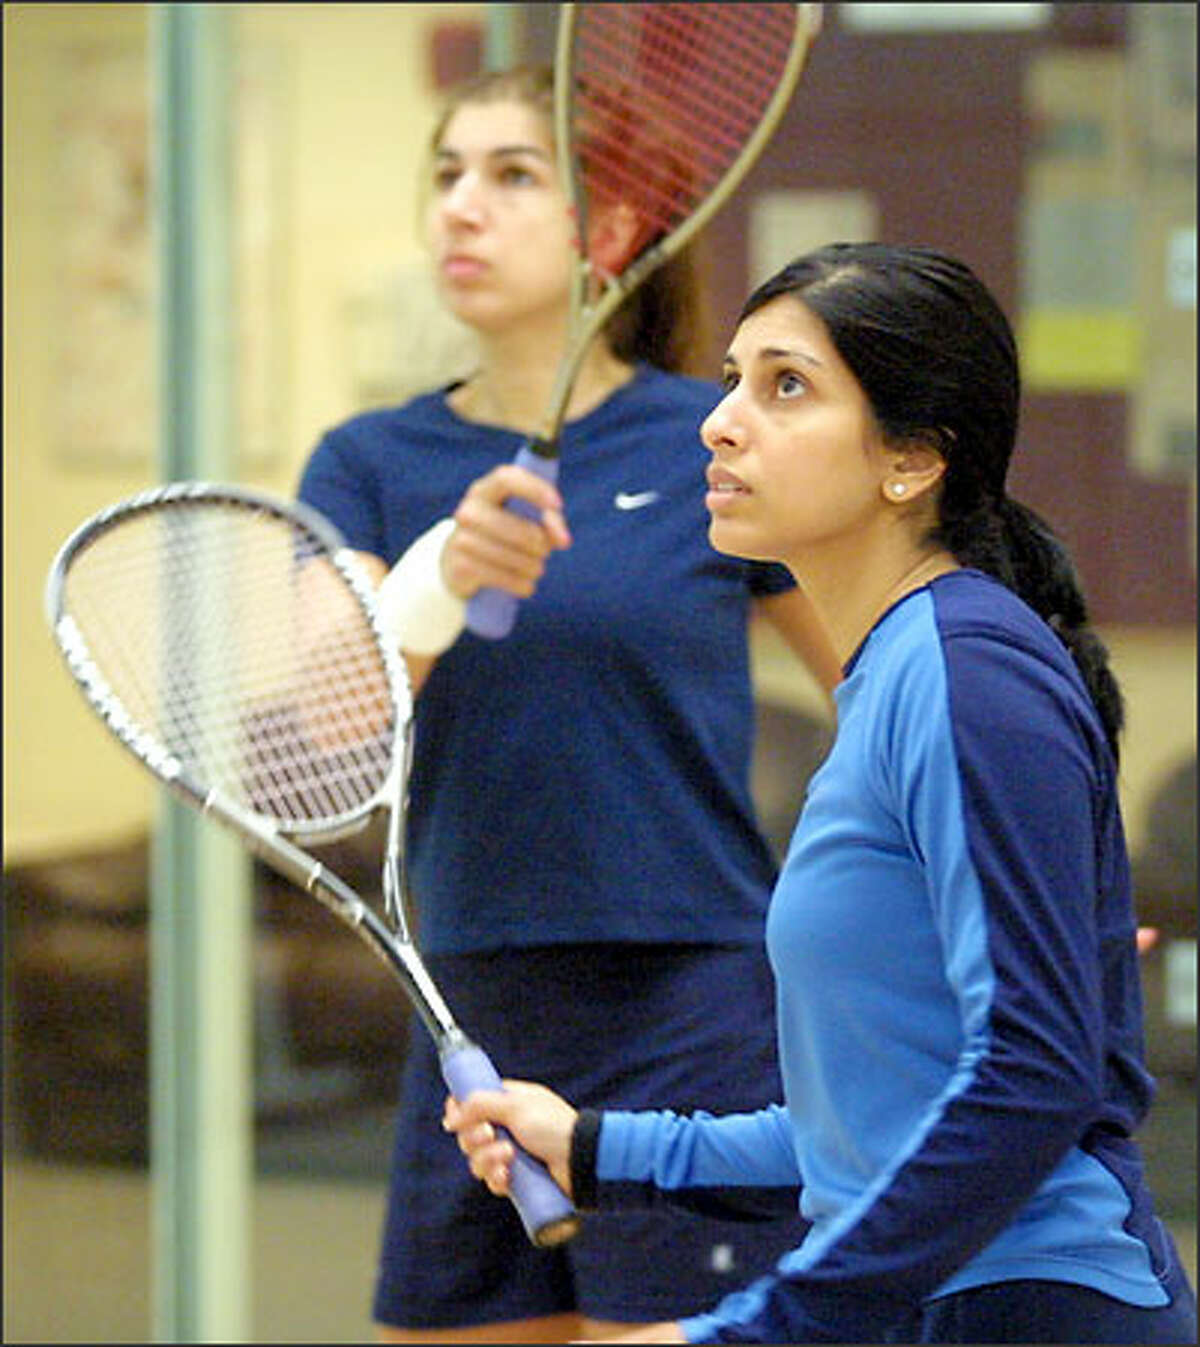 Latasha Khan, left, is the current national squash champion and has held the title three times. Older sister Shabana won the national title in 2001, beating Latasha in the final.